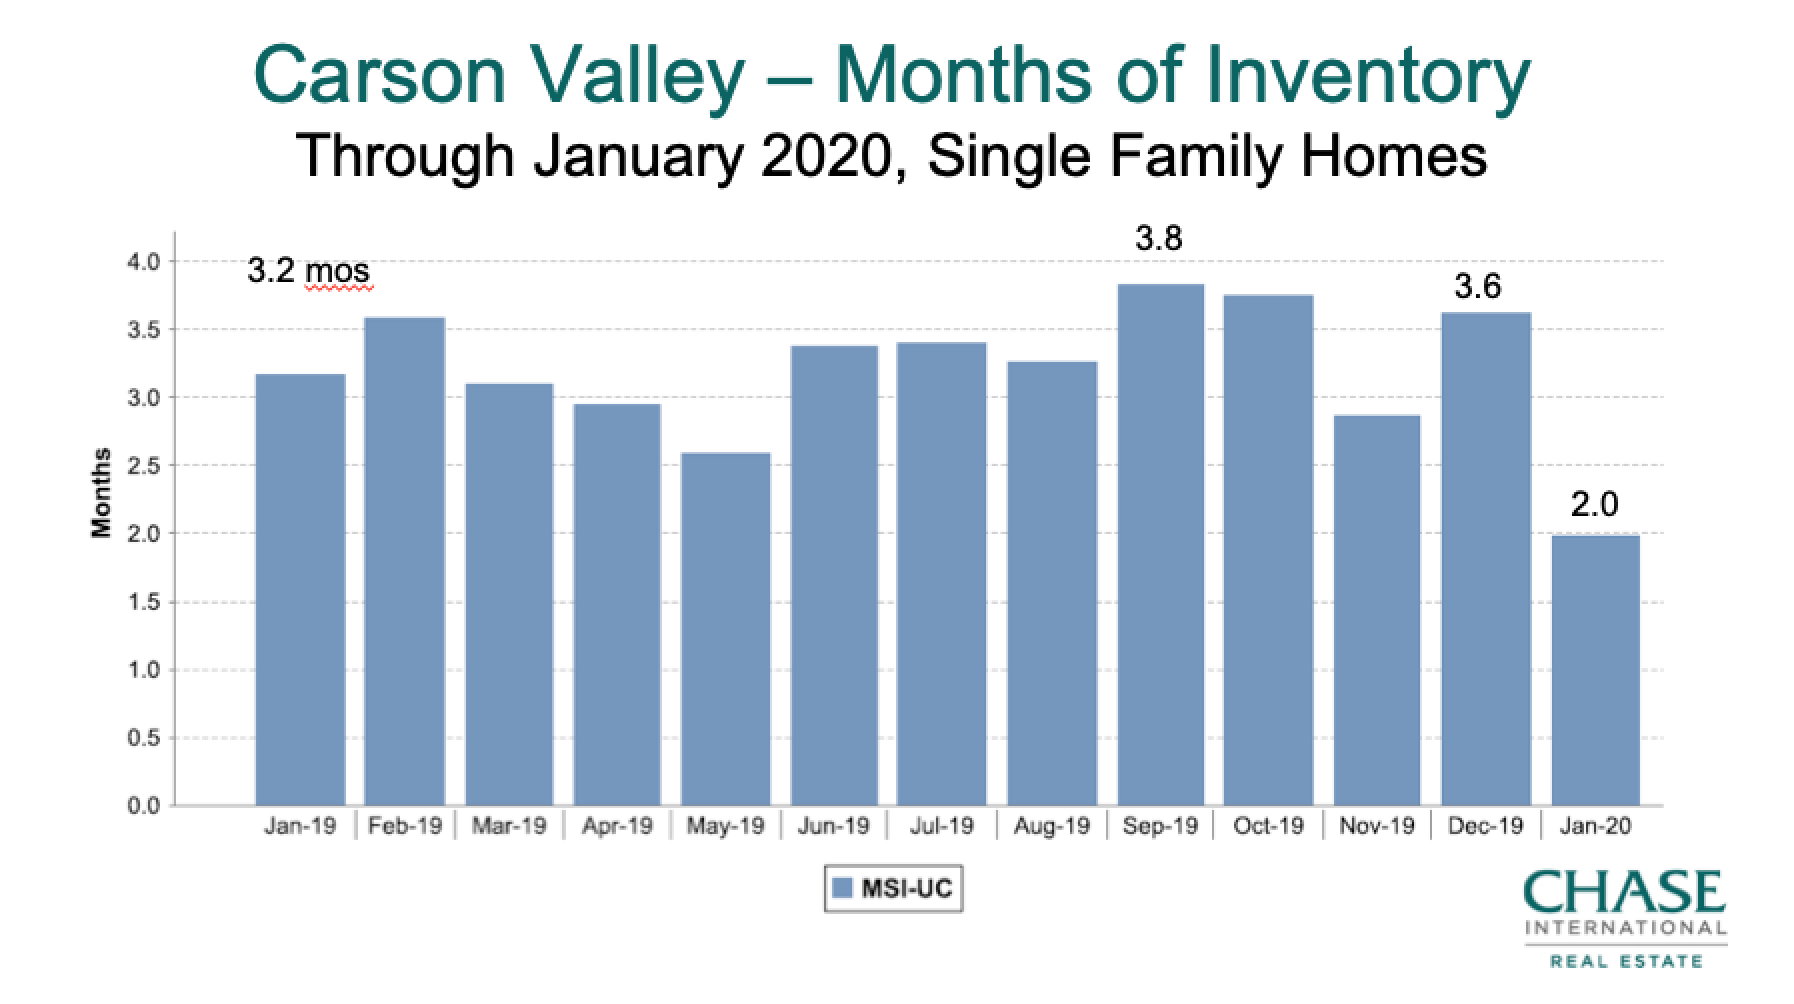 Carson Valley Months Supply Inventory 2019-Jan 2020